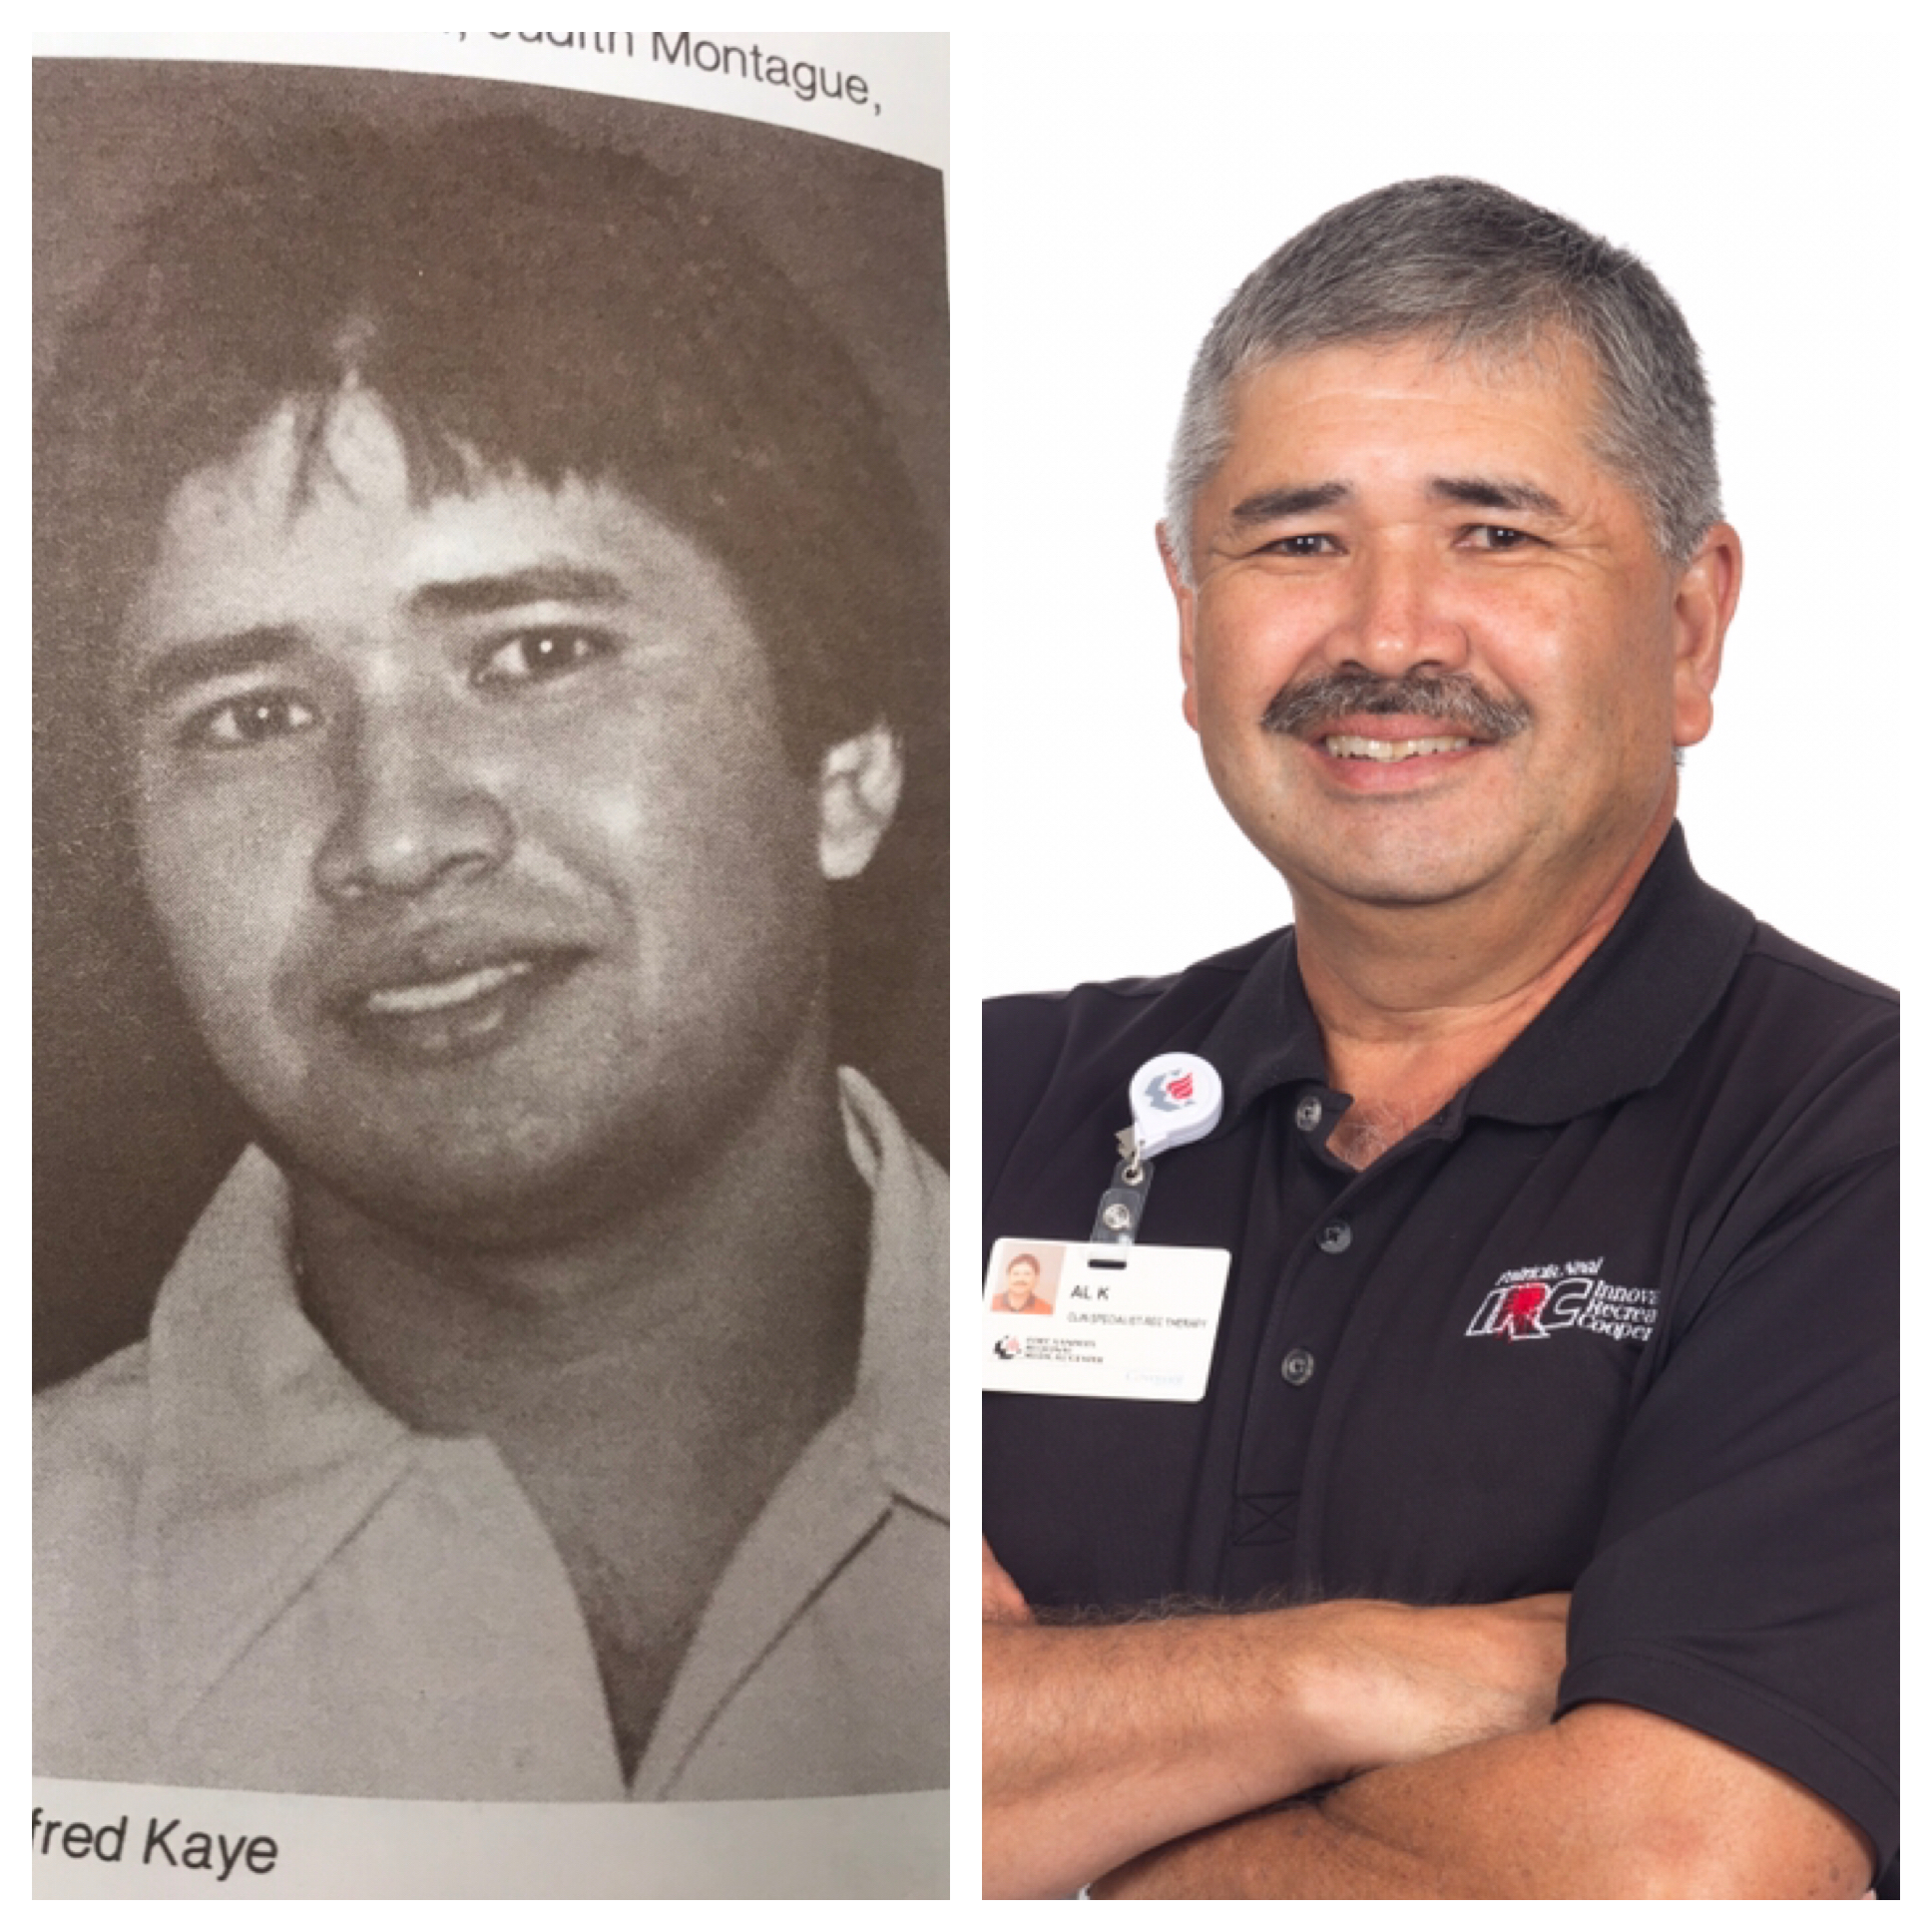 Al Kaye then and now